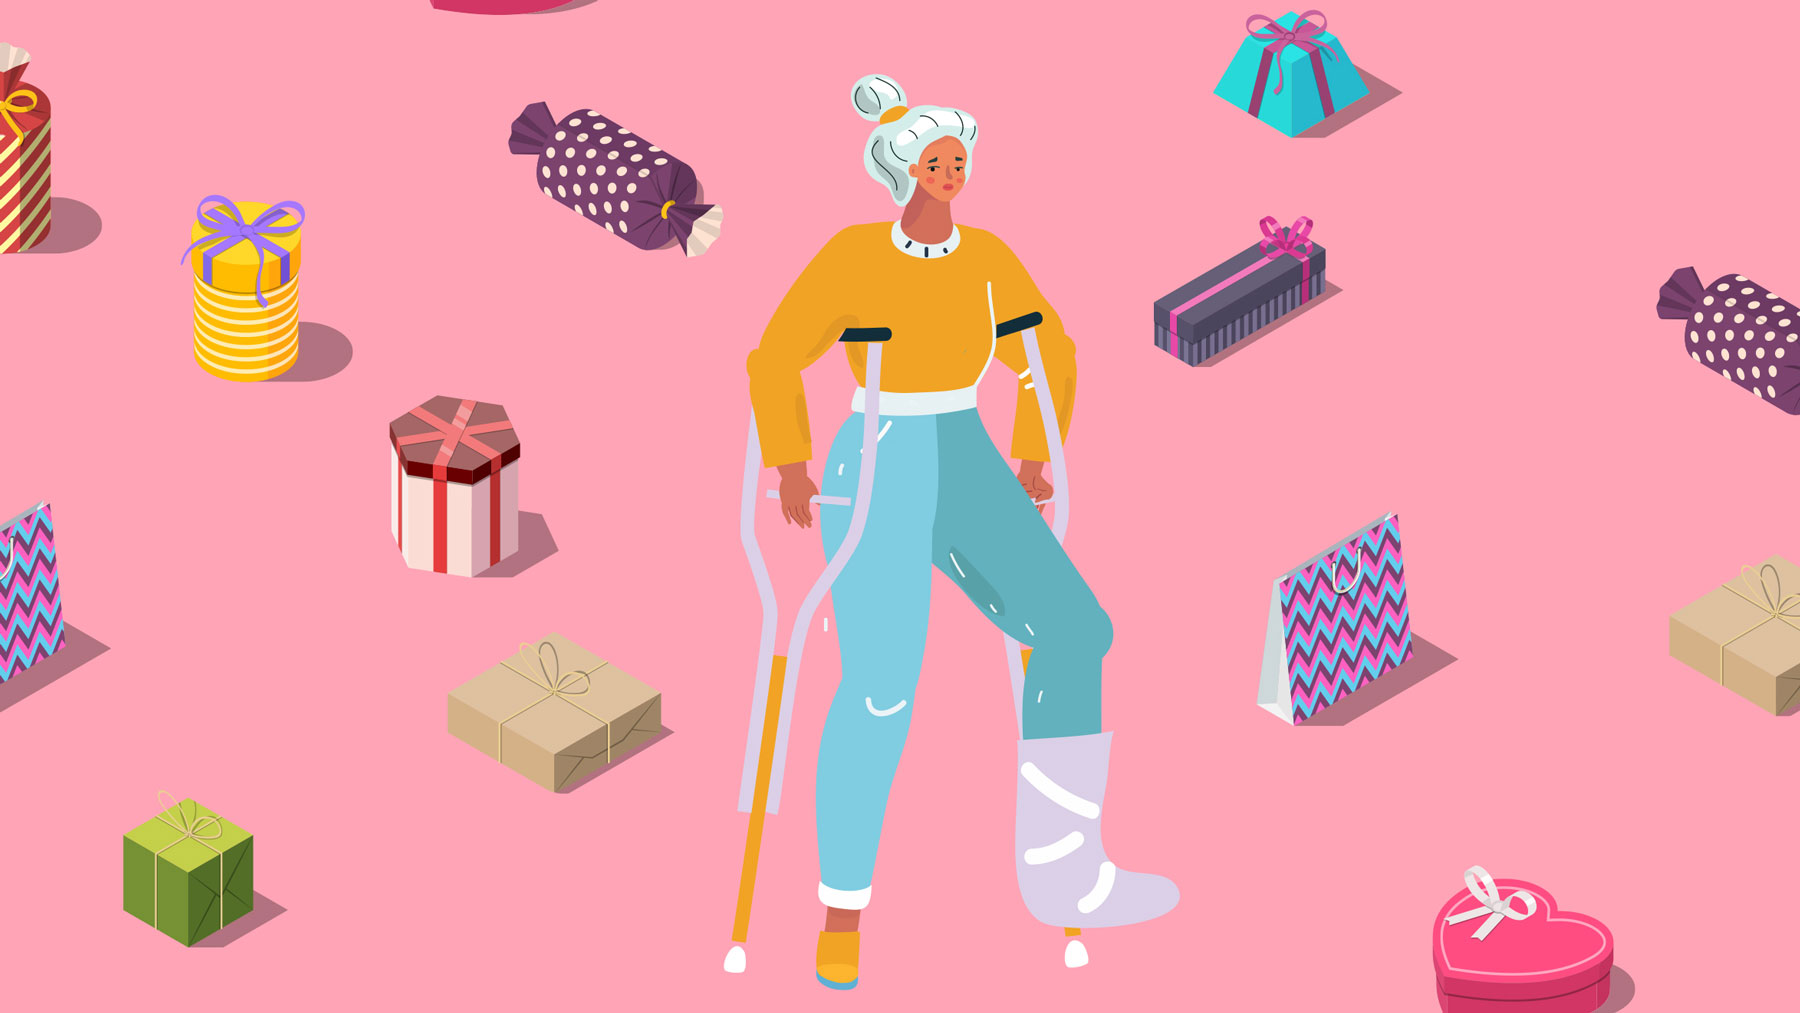 Gifts for sick people, injured people, and quarantine gift ideas (woman on crutches)